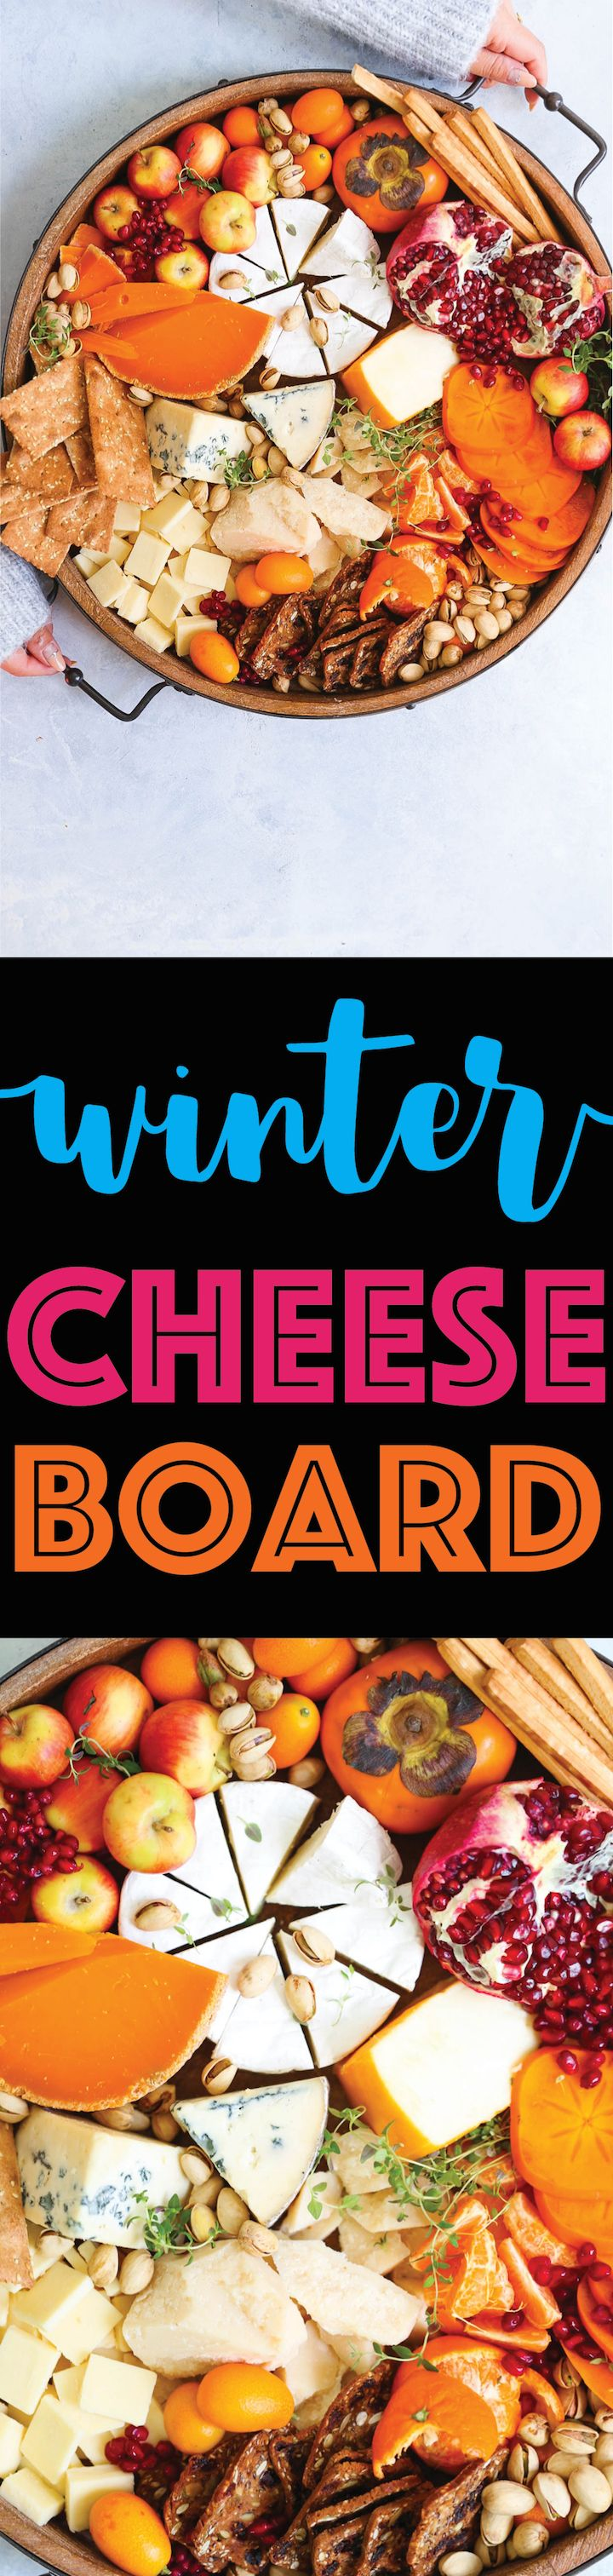 Winter Cheese Board - Your guests will be so impressed with this Winter harvest cheese board! It takes 10 minutes to prep and it has all of your favorite winter fruits, cheeses and crackers. And it serves a huge gathering without breaking the bank!